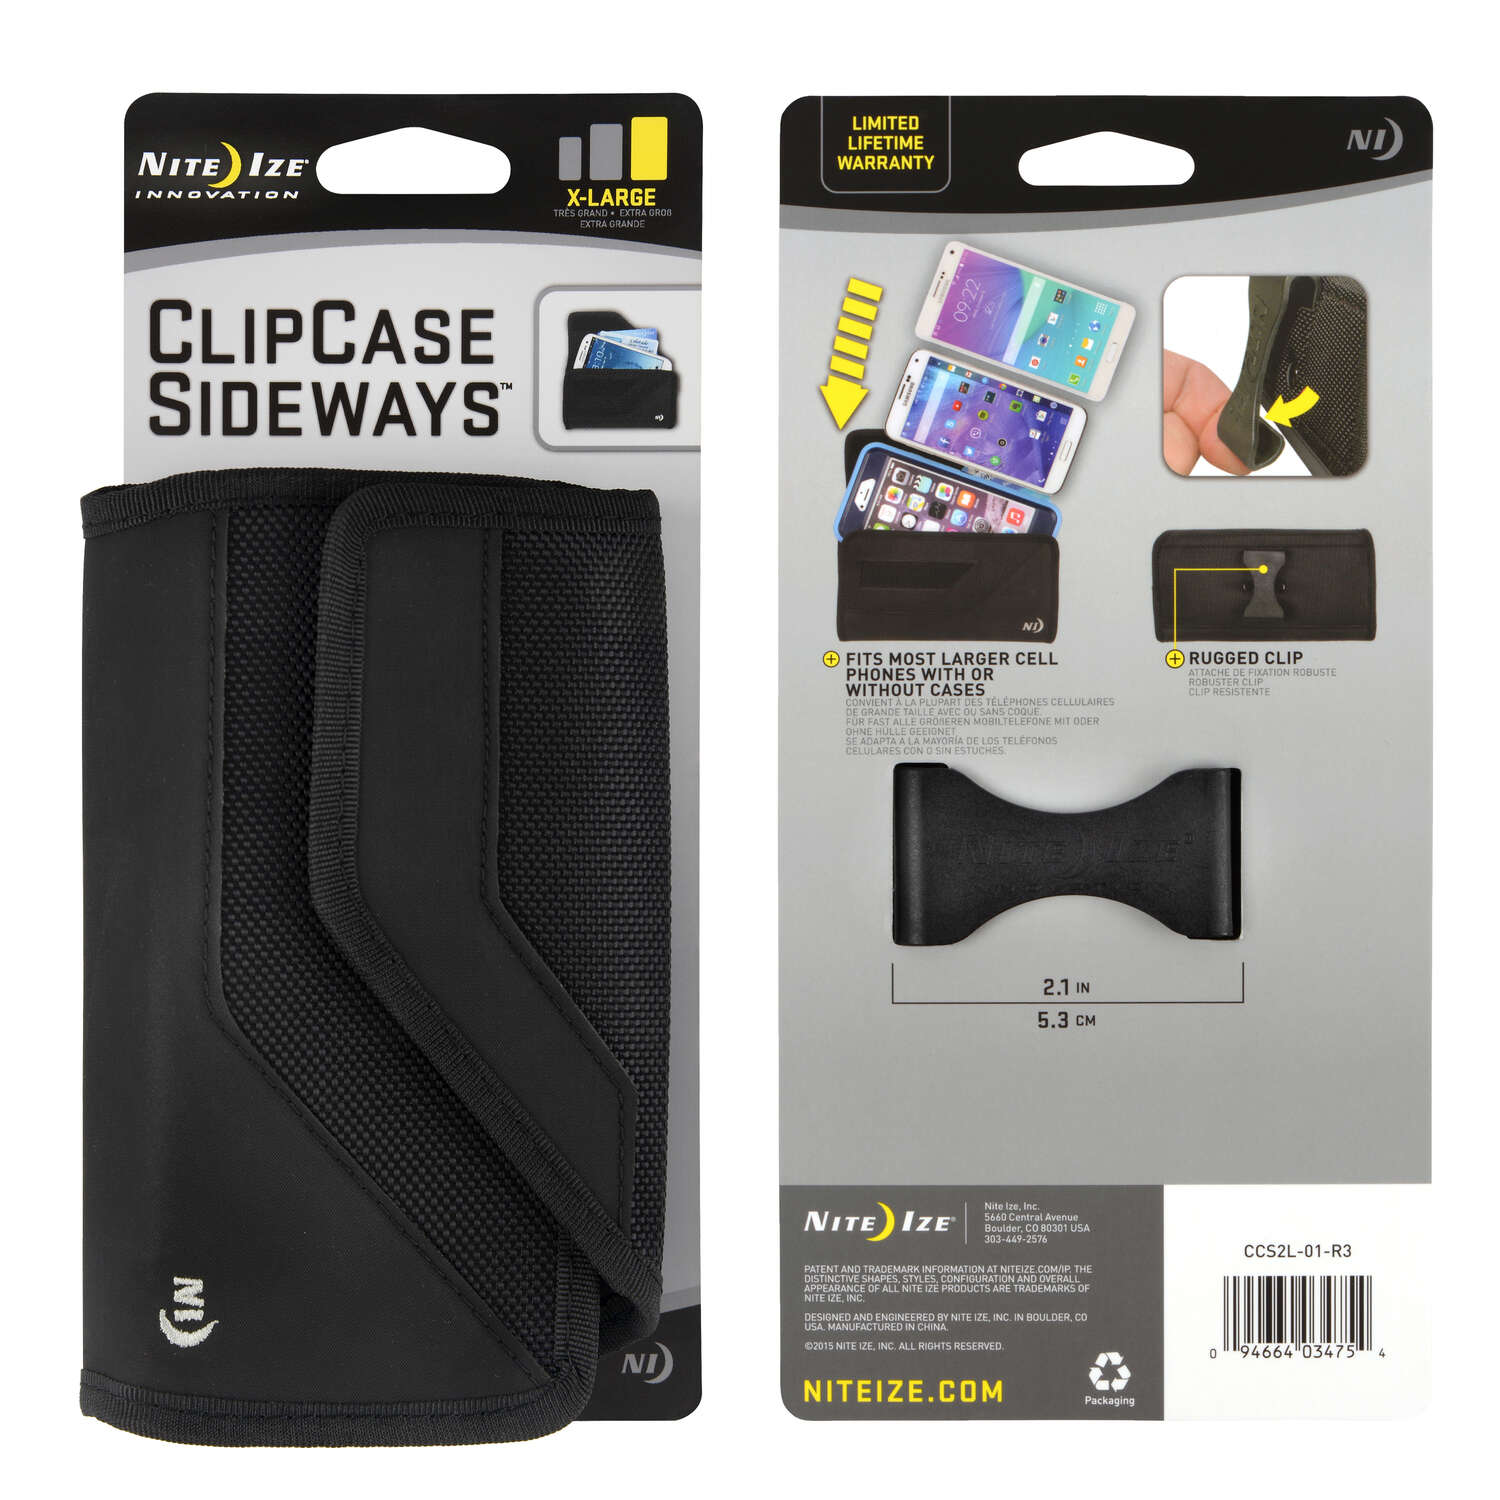 Nite Ize  Clip Case Sideways  Black  Sideways Cell Phone Case  For Universal Universal